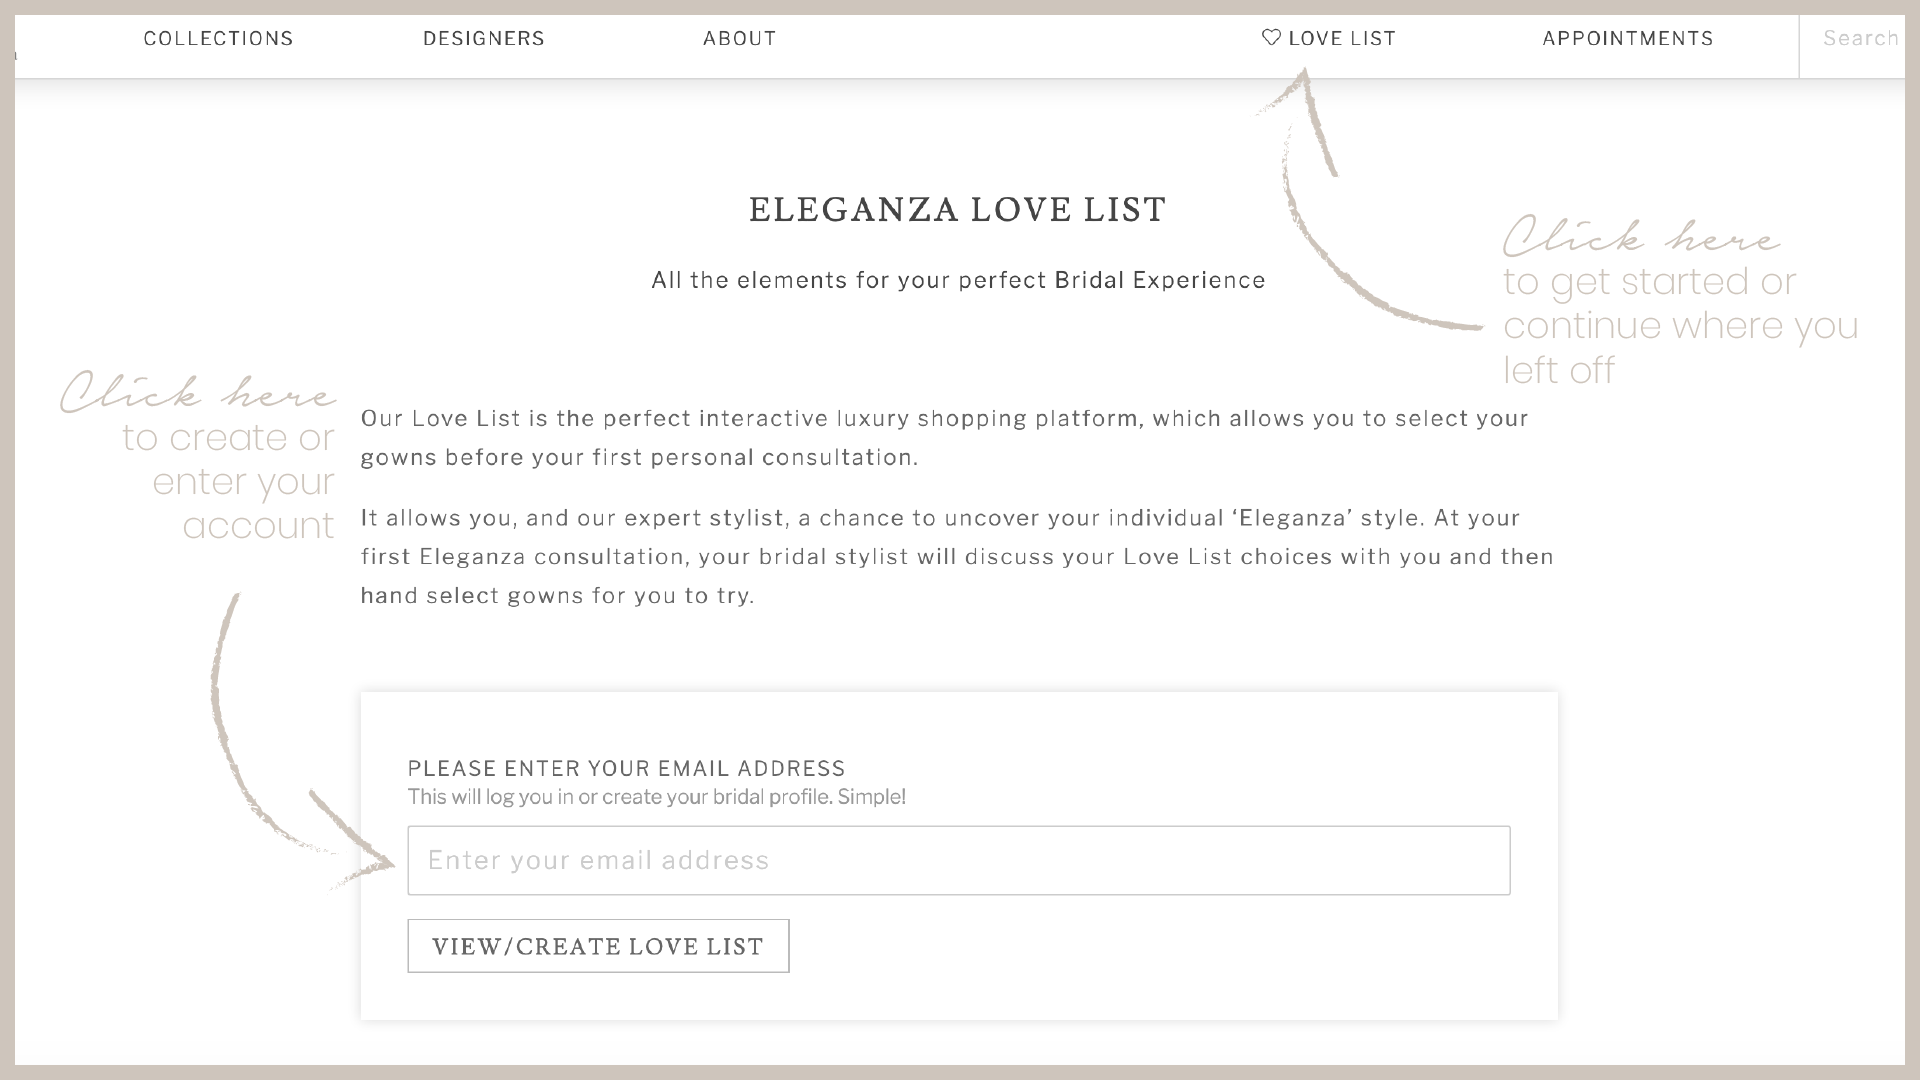 HOW TO: Use the Eleganza Love List. Desktop Image